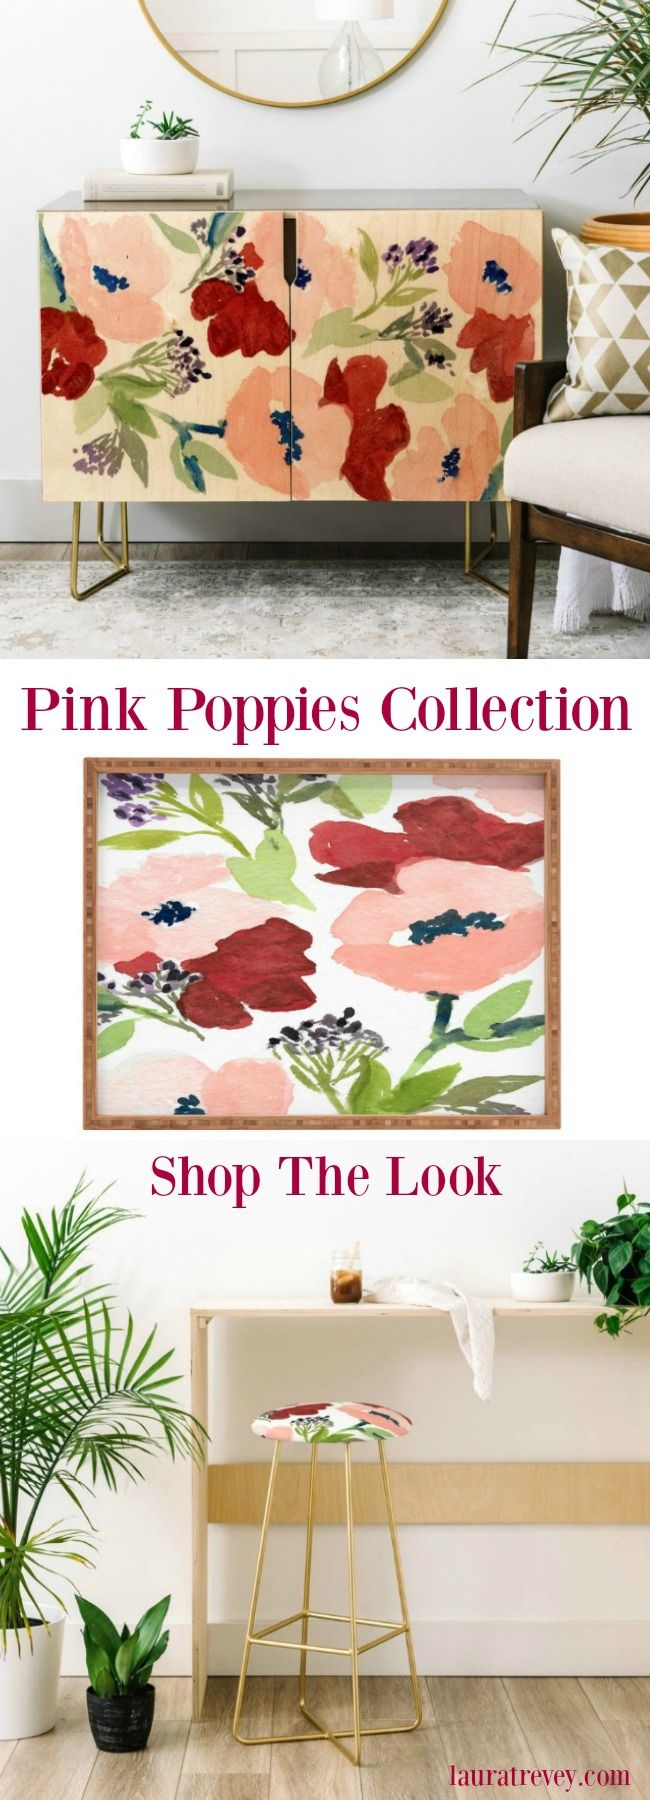 Pink Poppies Credenza and Bar Stool - Shop the Furniture and Home Decor Collection